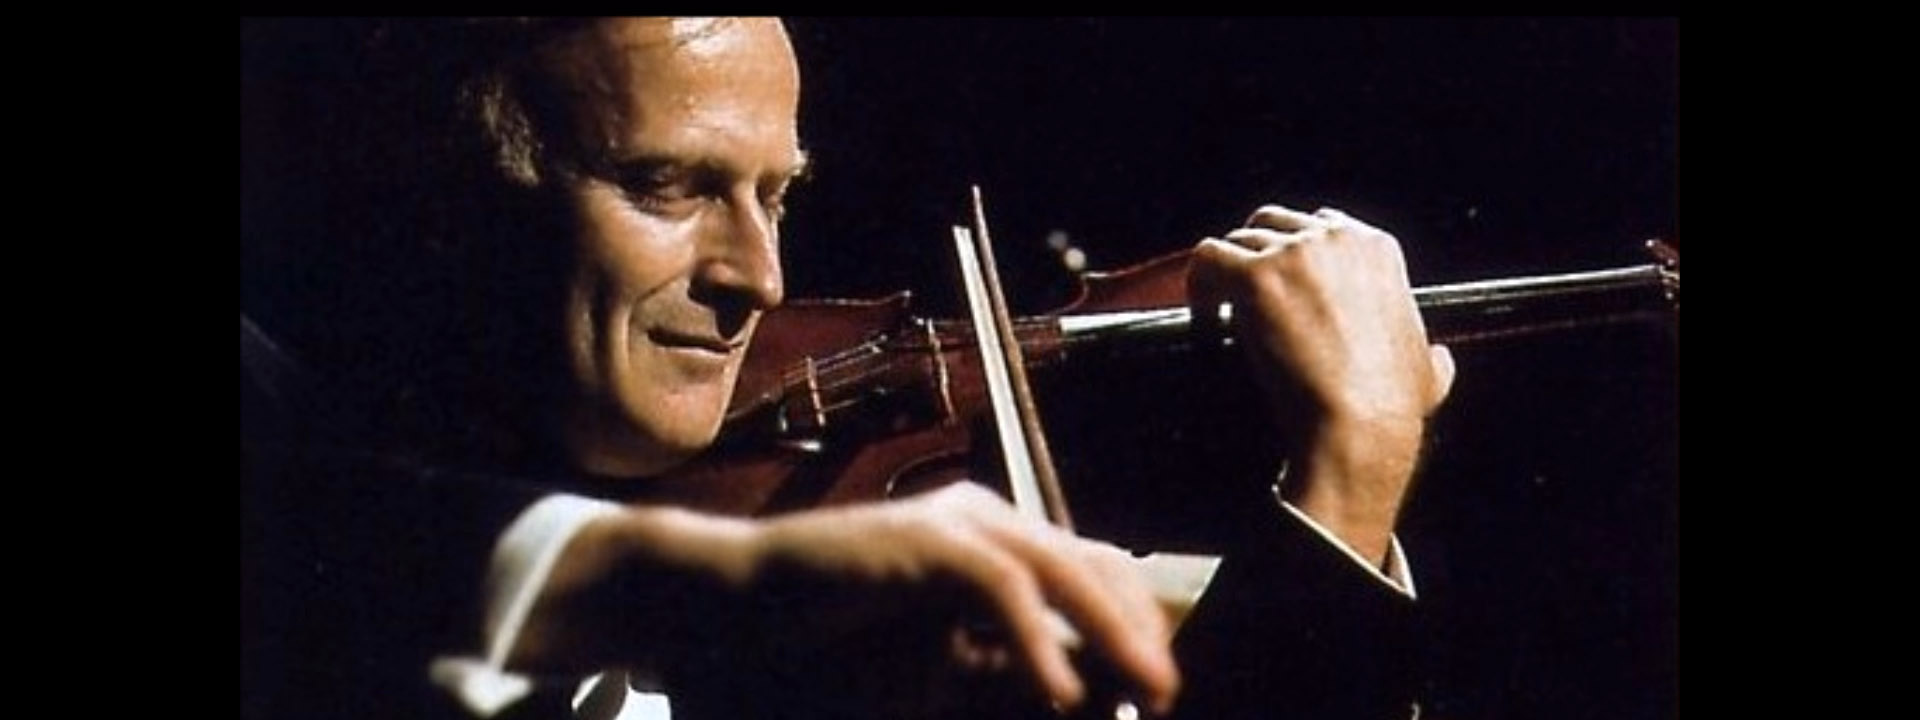 Screenshot Youtube-Video Yehudi Menuhin